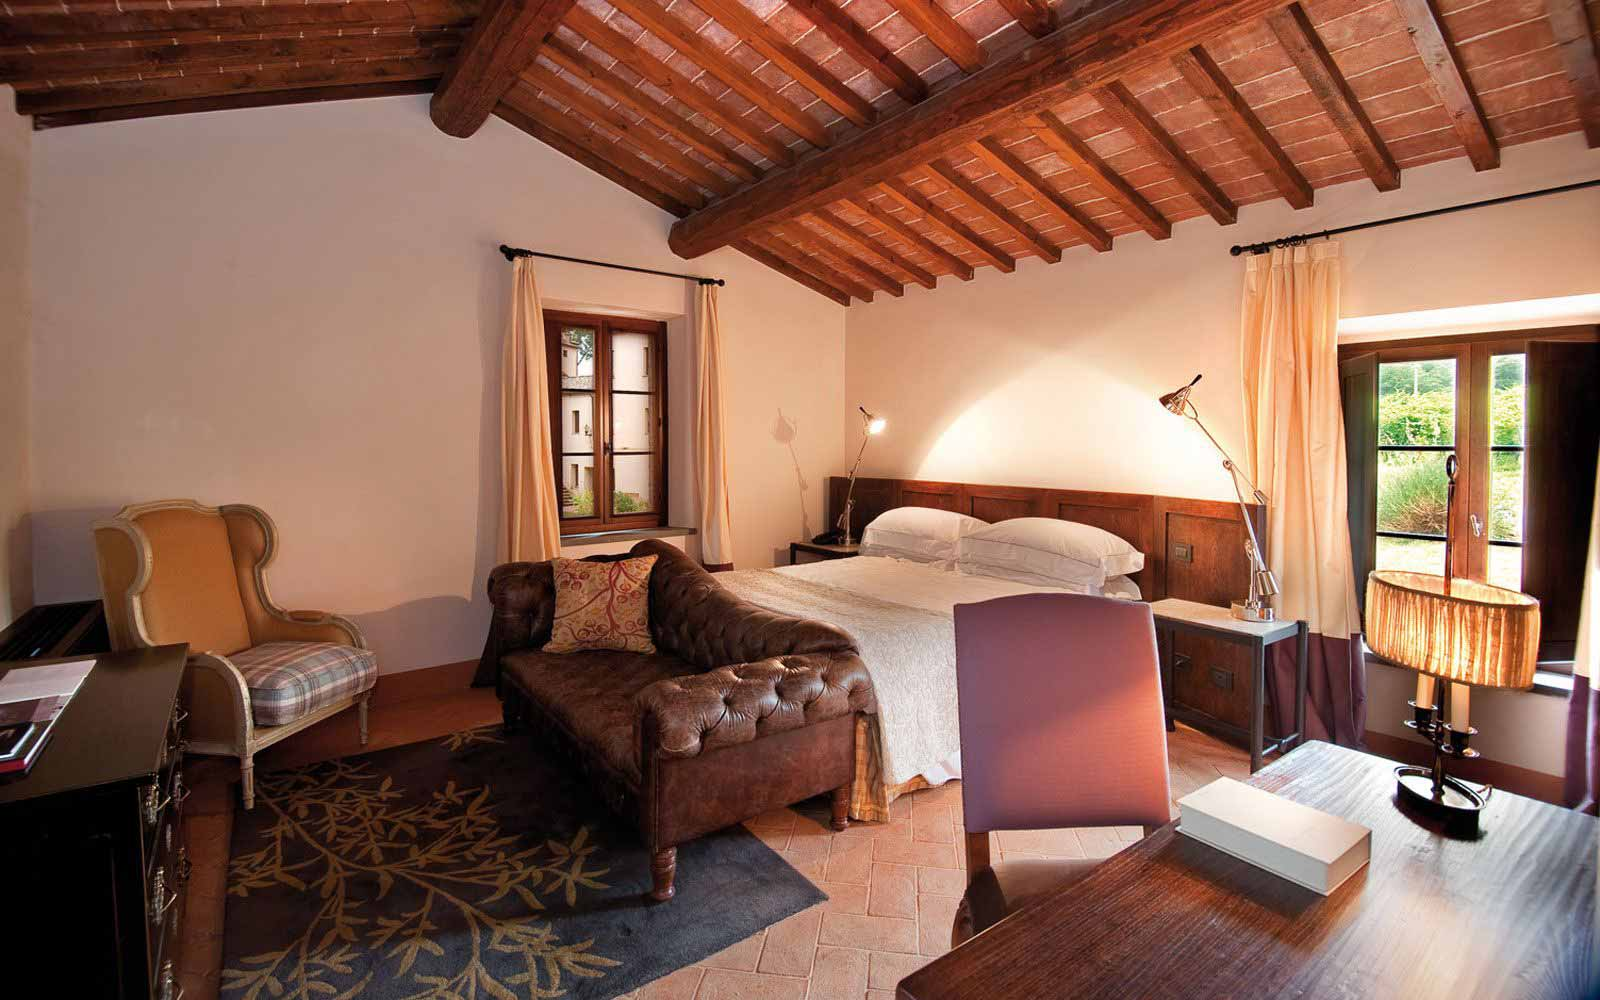 Prestige room at Castel Monastero Tuscan Resort & Spa